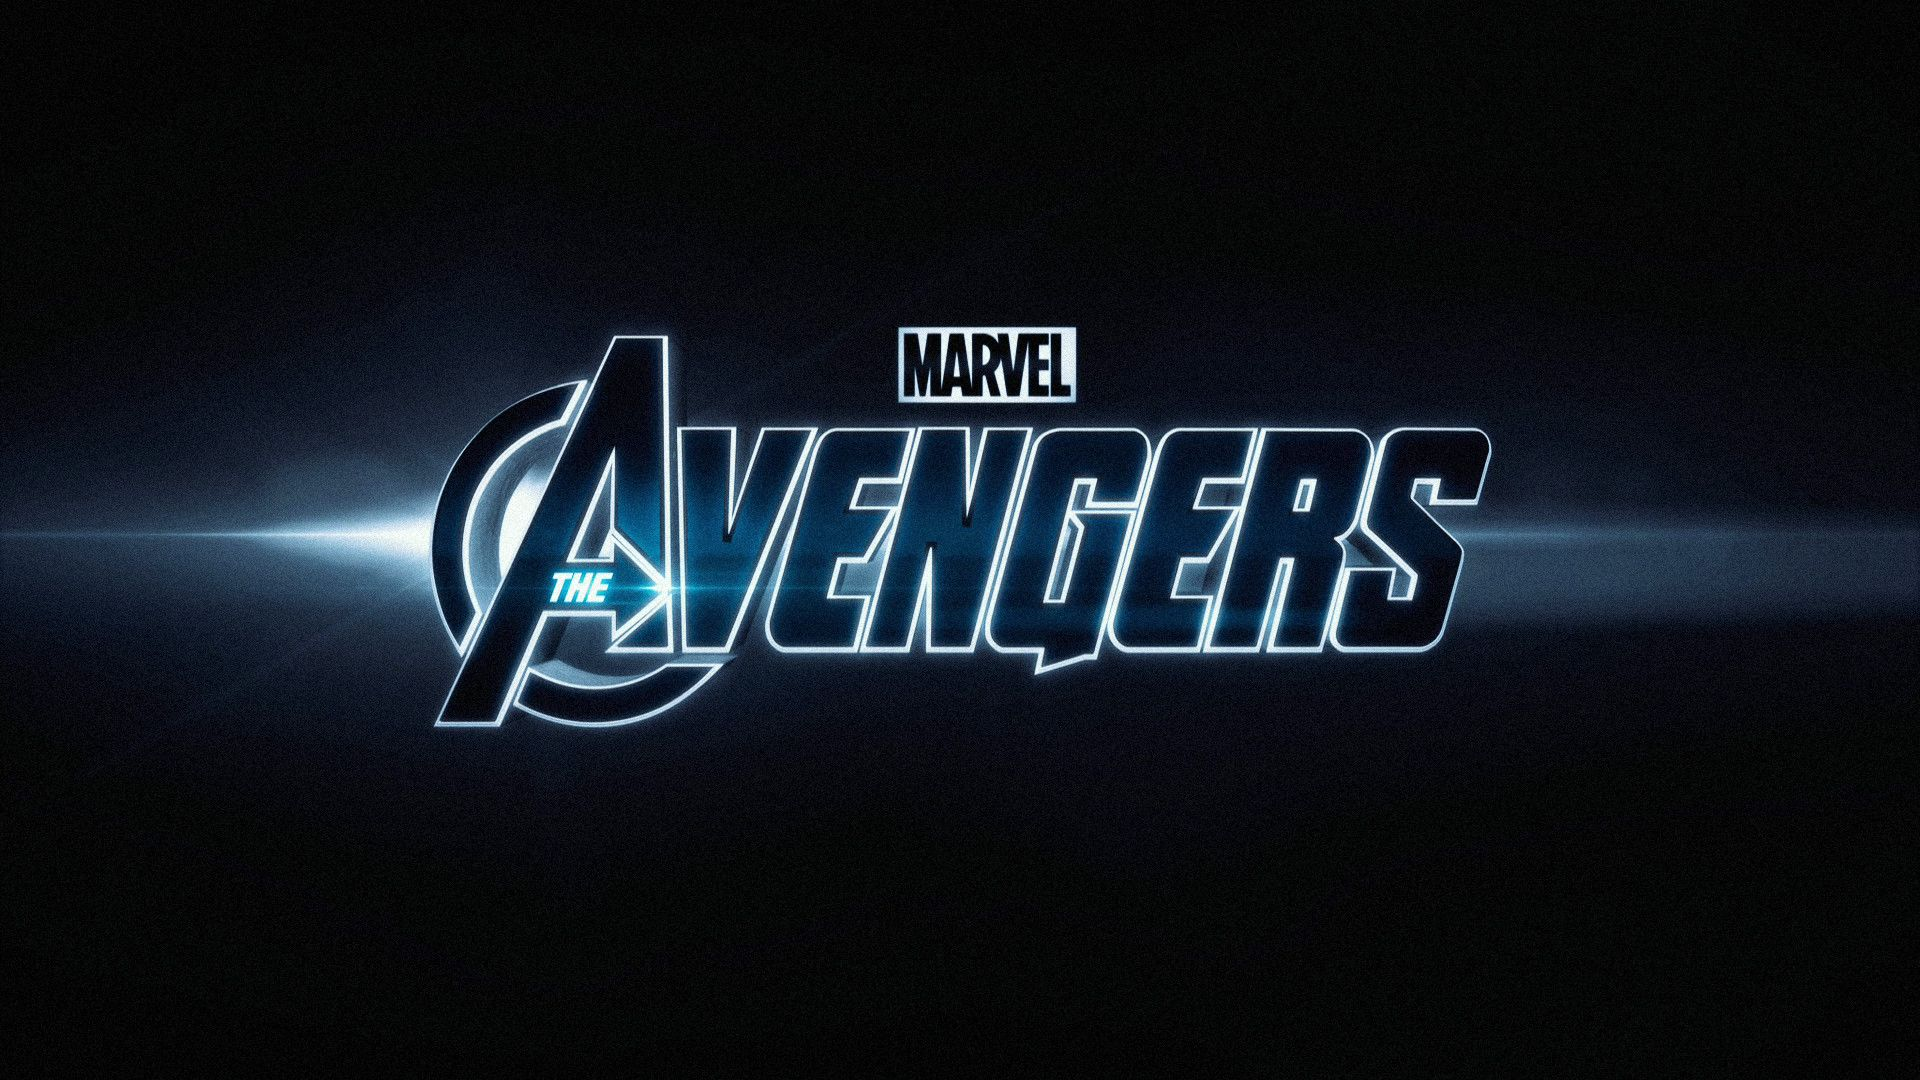 Avengers Background